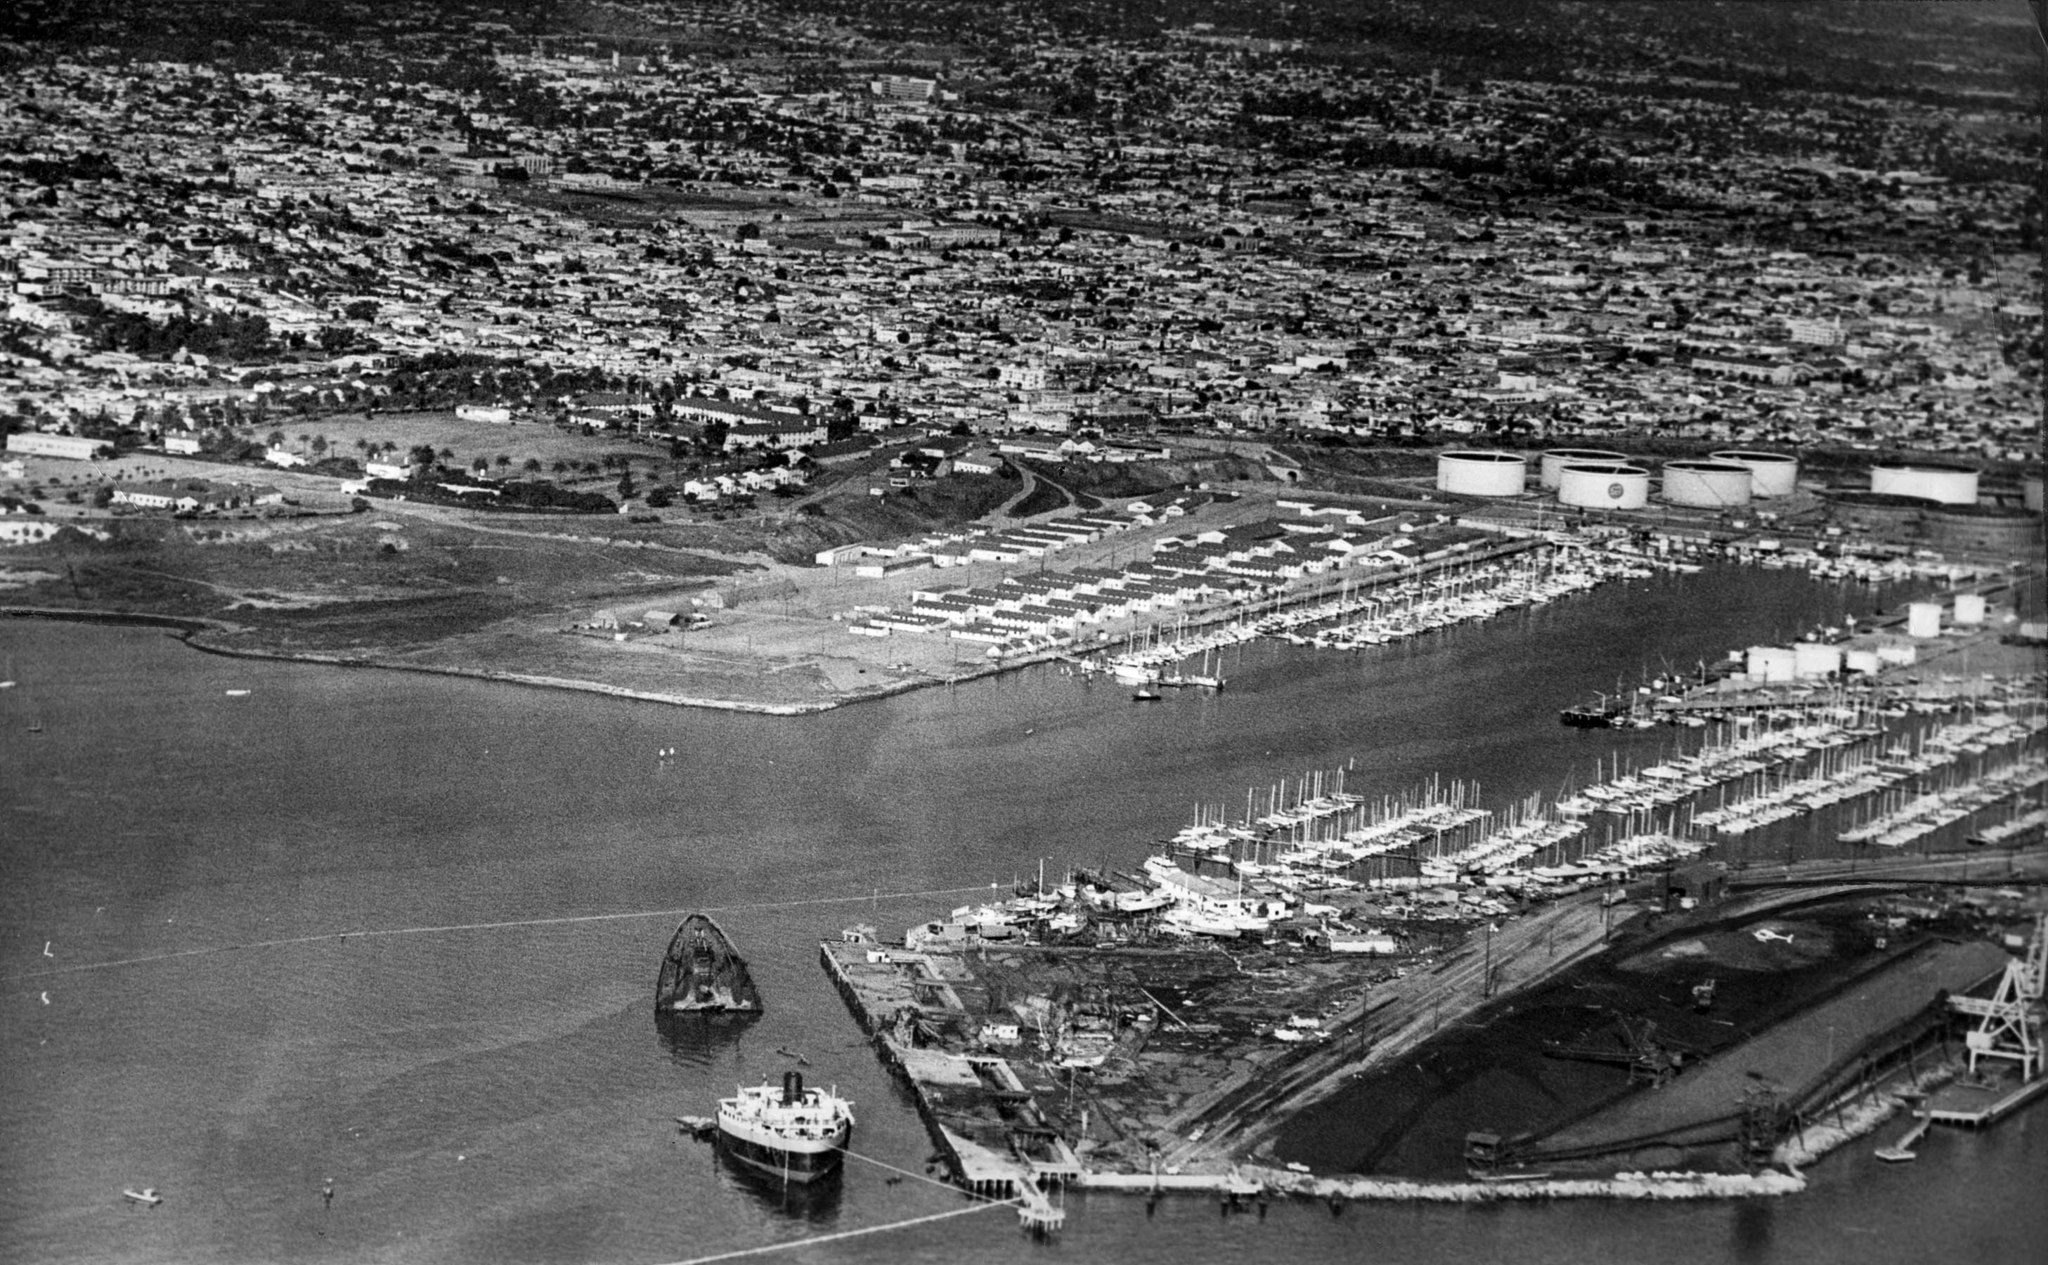 Dec. 18, 1976: Aerial photo of San Pedro with the destroyed oil tanker Sansinena in lower portion of